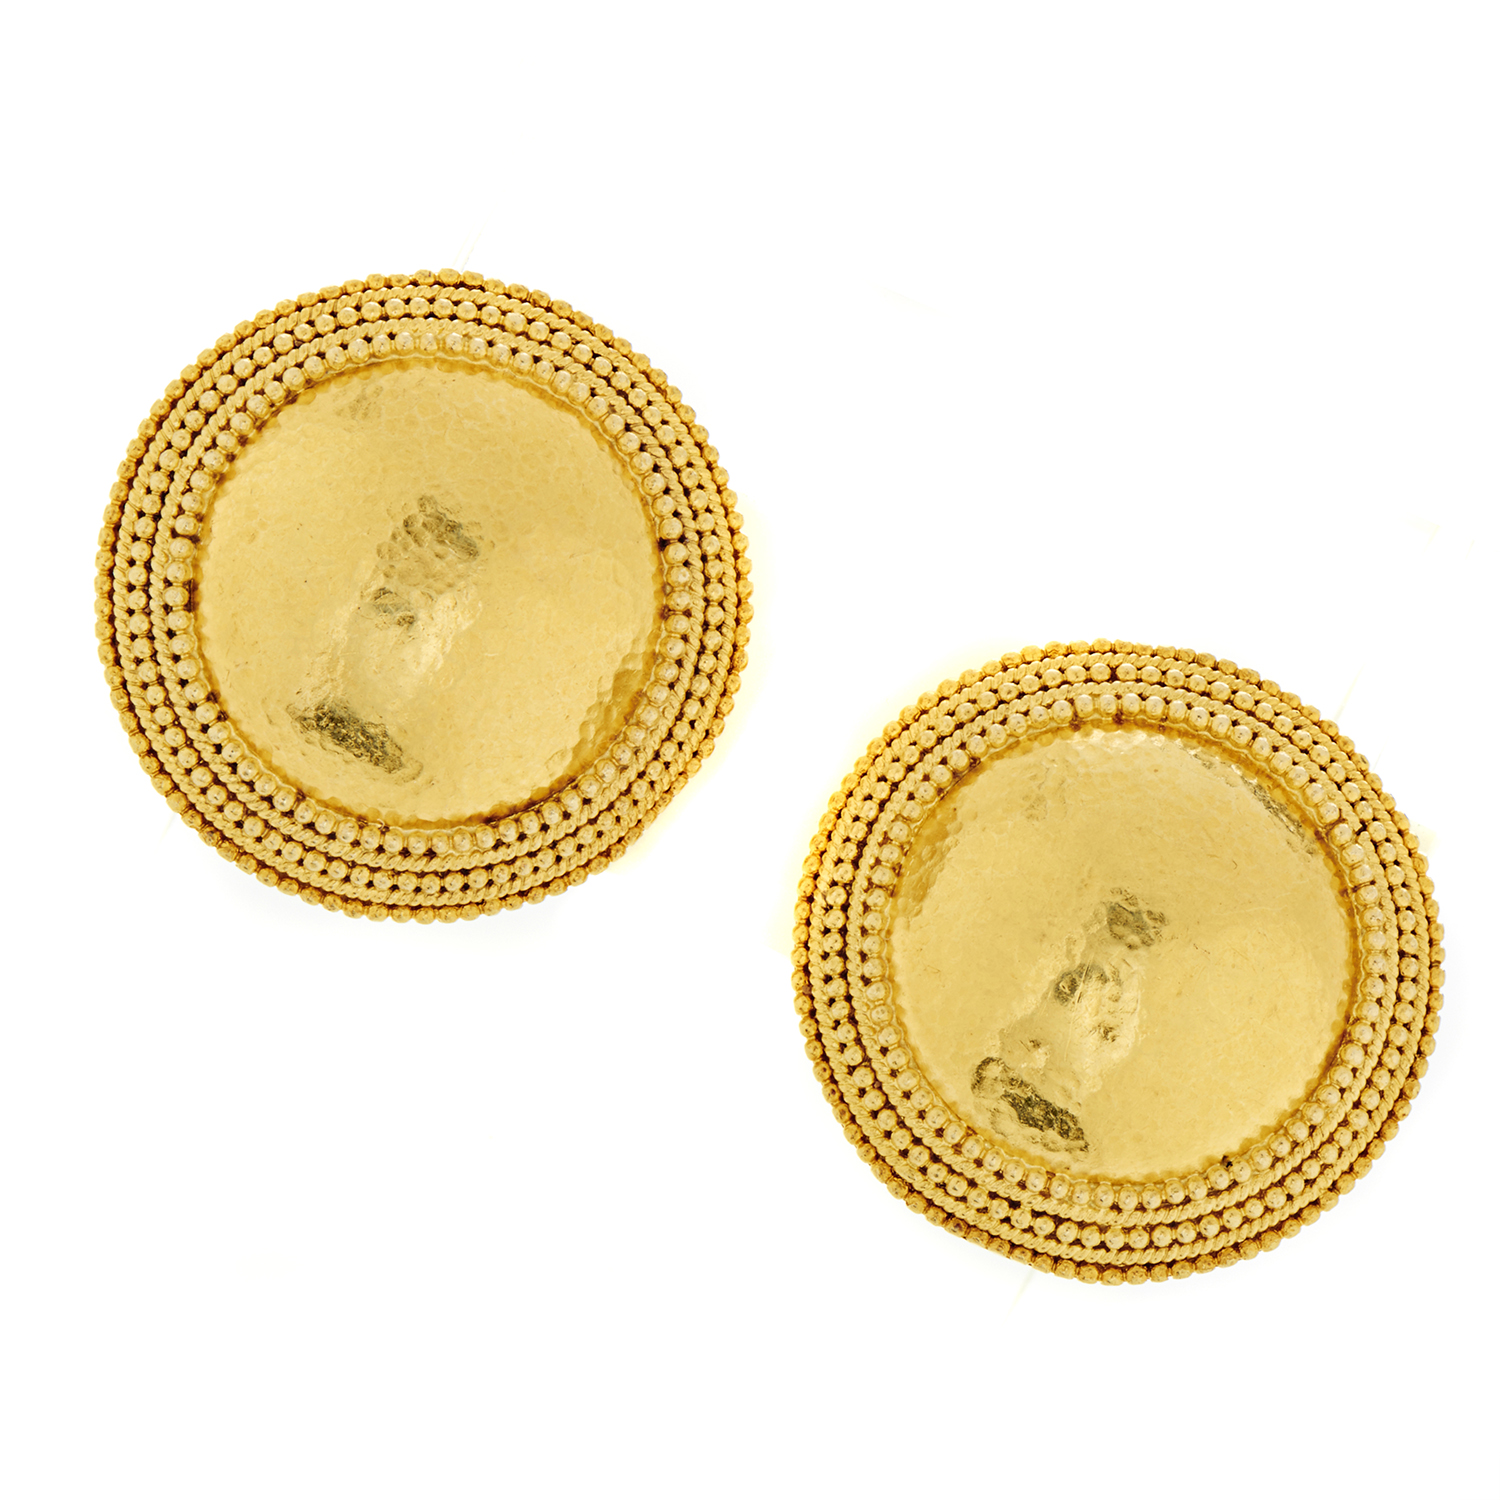 Ilias Lalaounis Women's 18K Yellow Gold Hammered Clip-on Earrings